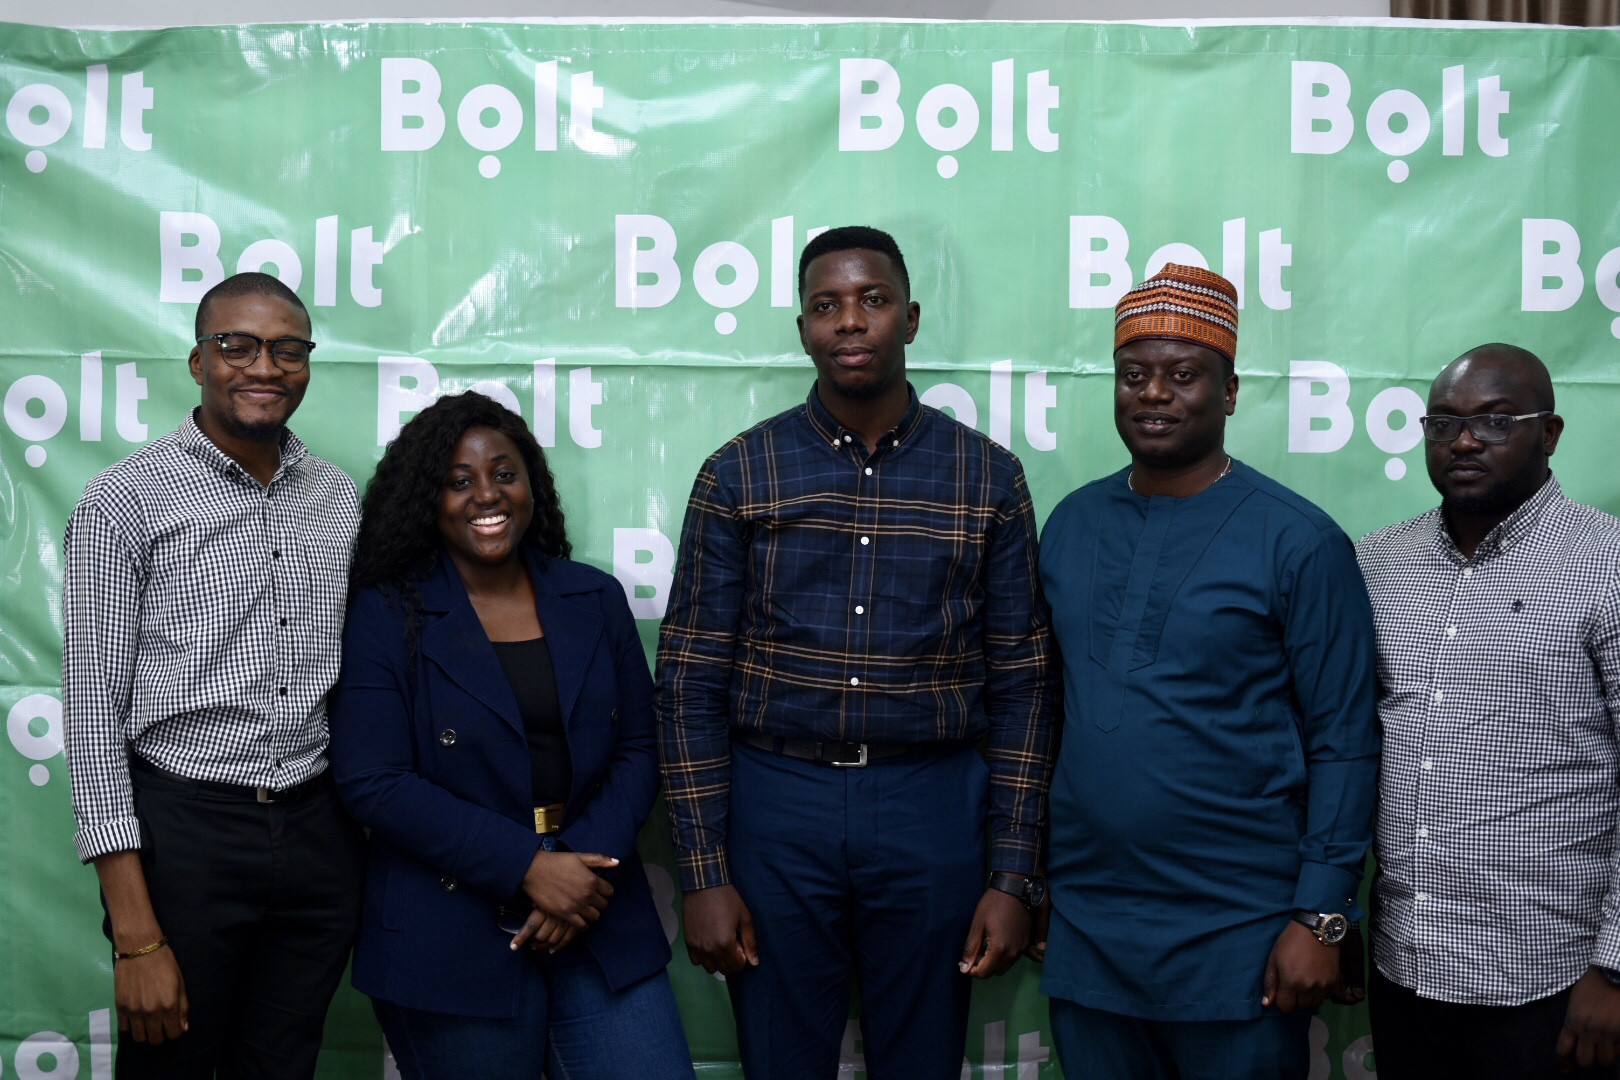 Bolt introduces a new Identity Verification Portal for drivers